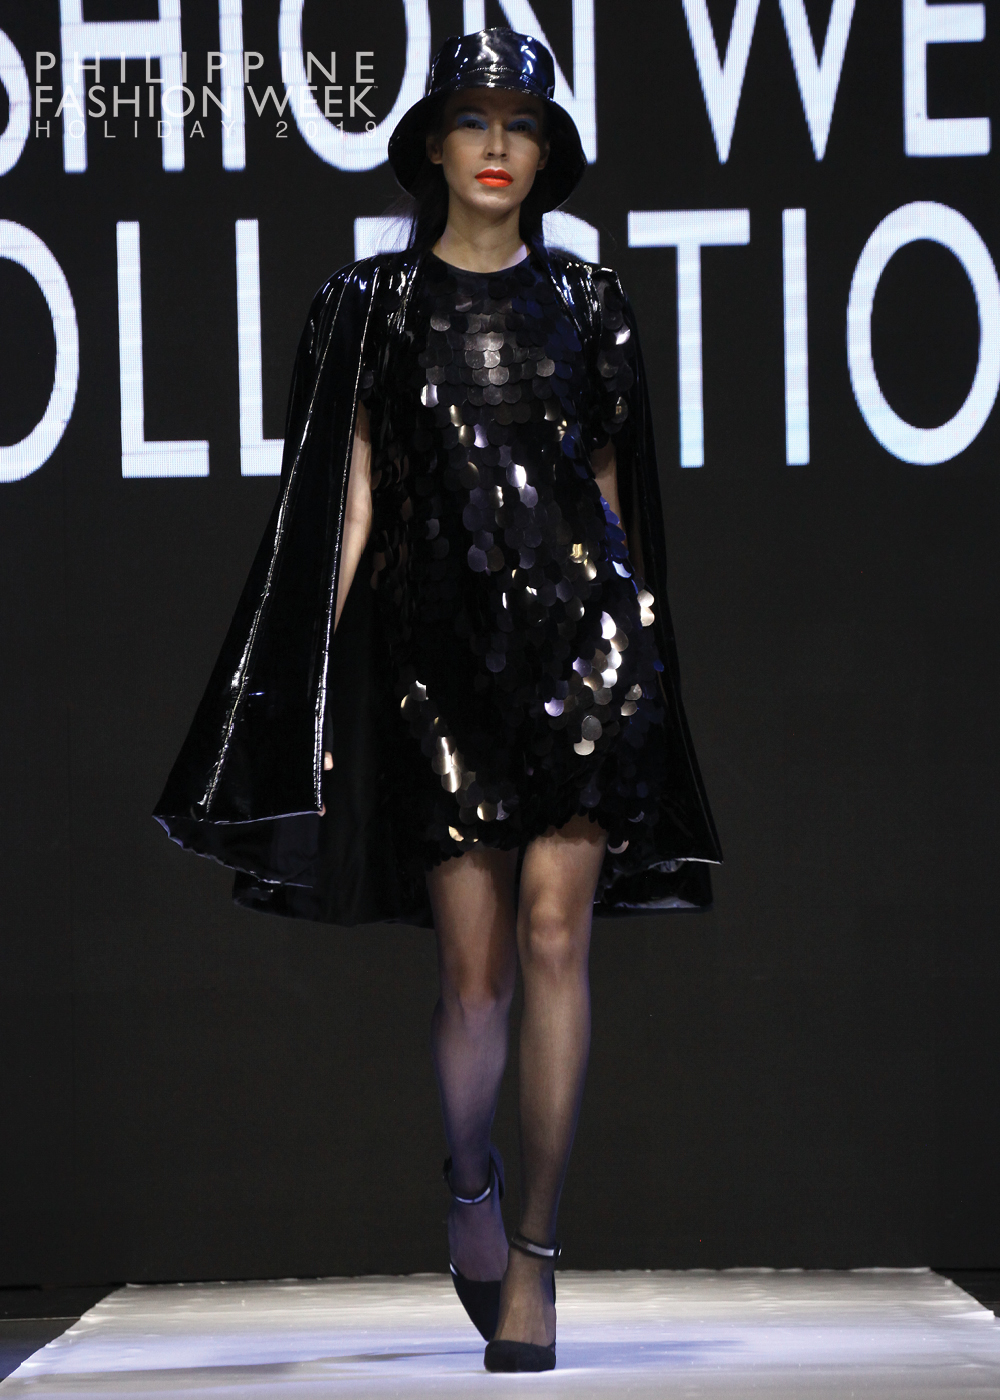 PhFW_collection show22.jpg